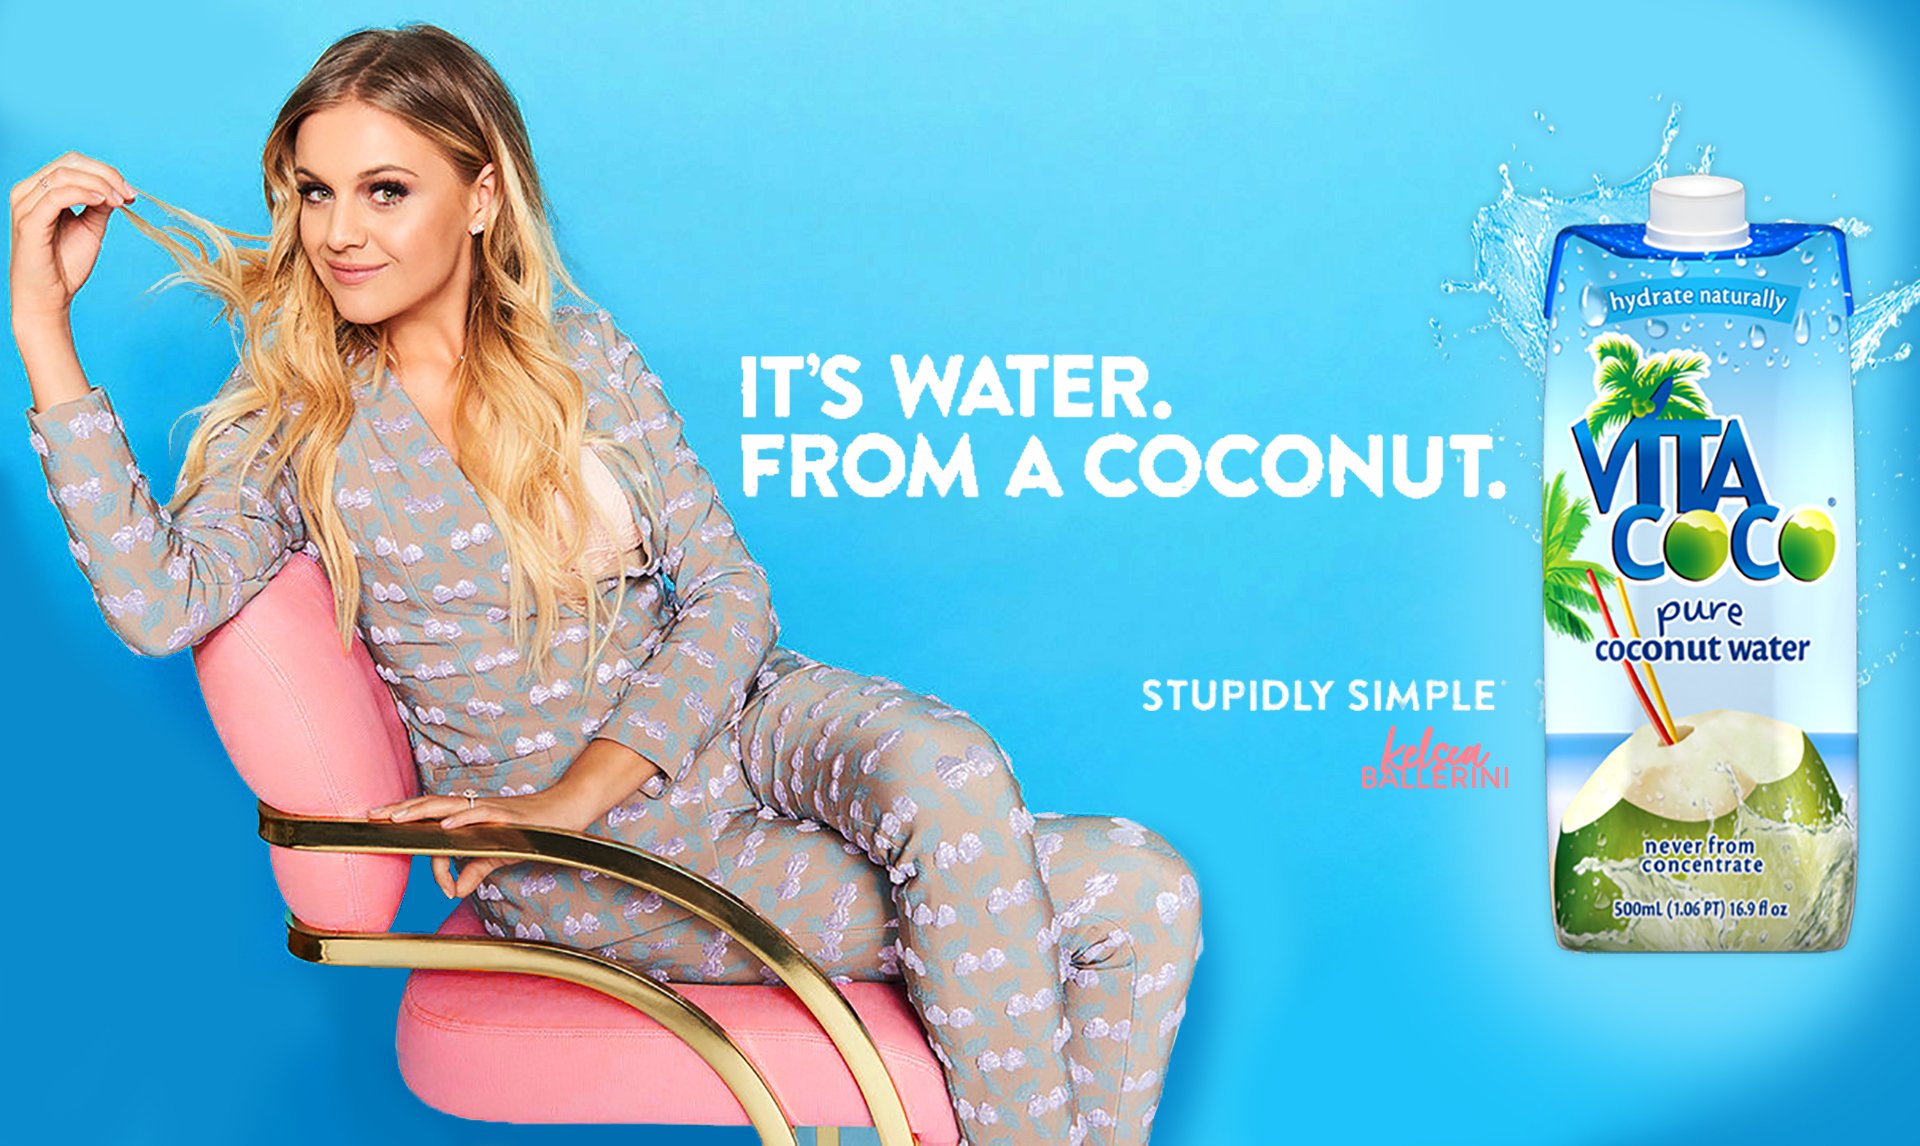 Option 2 Mock up for Kelsea Ballerini x VitaCoco Brand Endorsement. 2019.